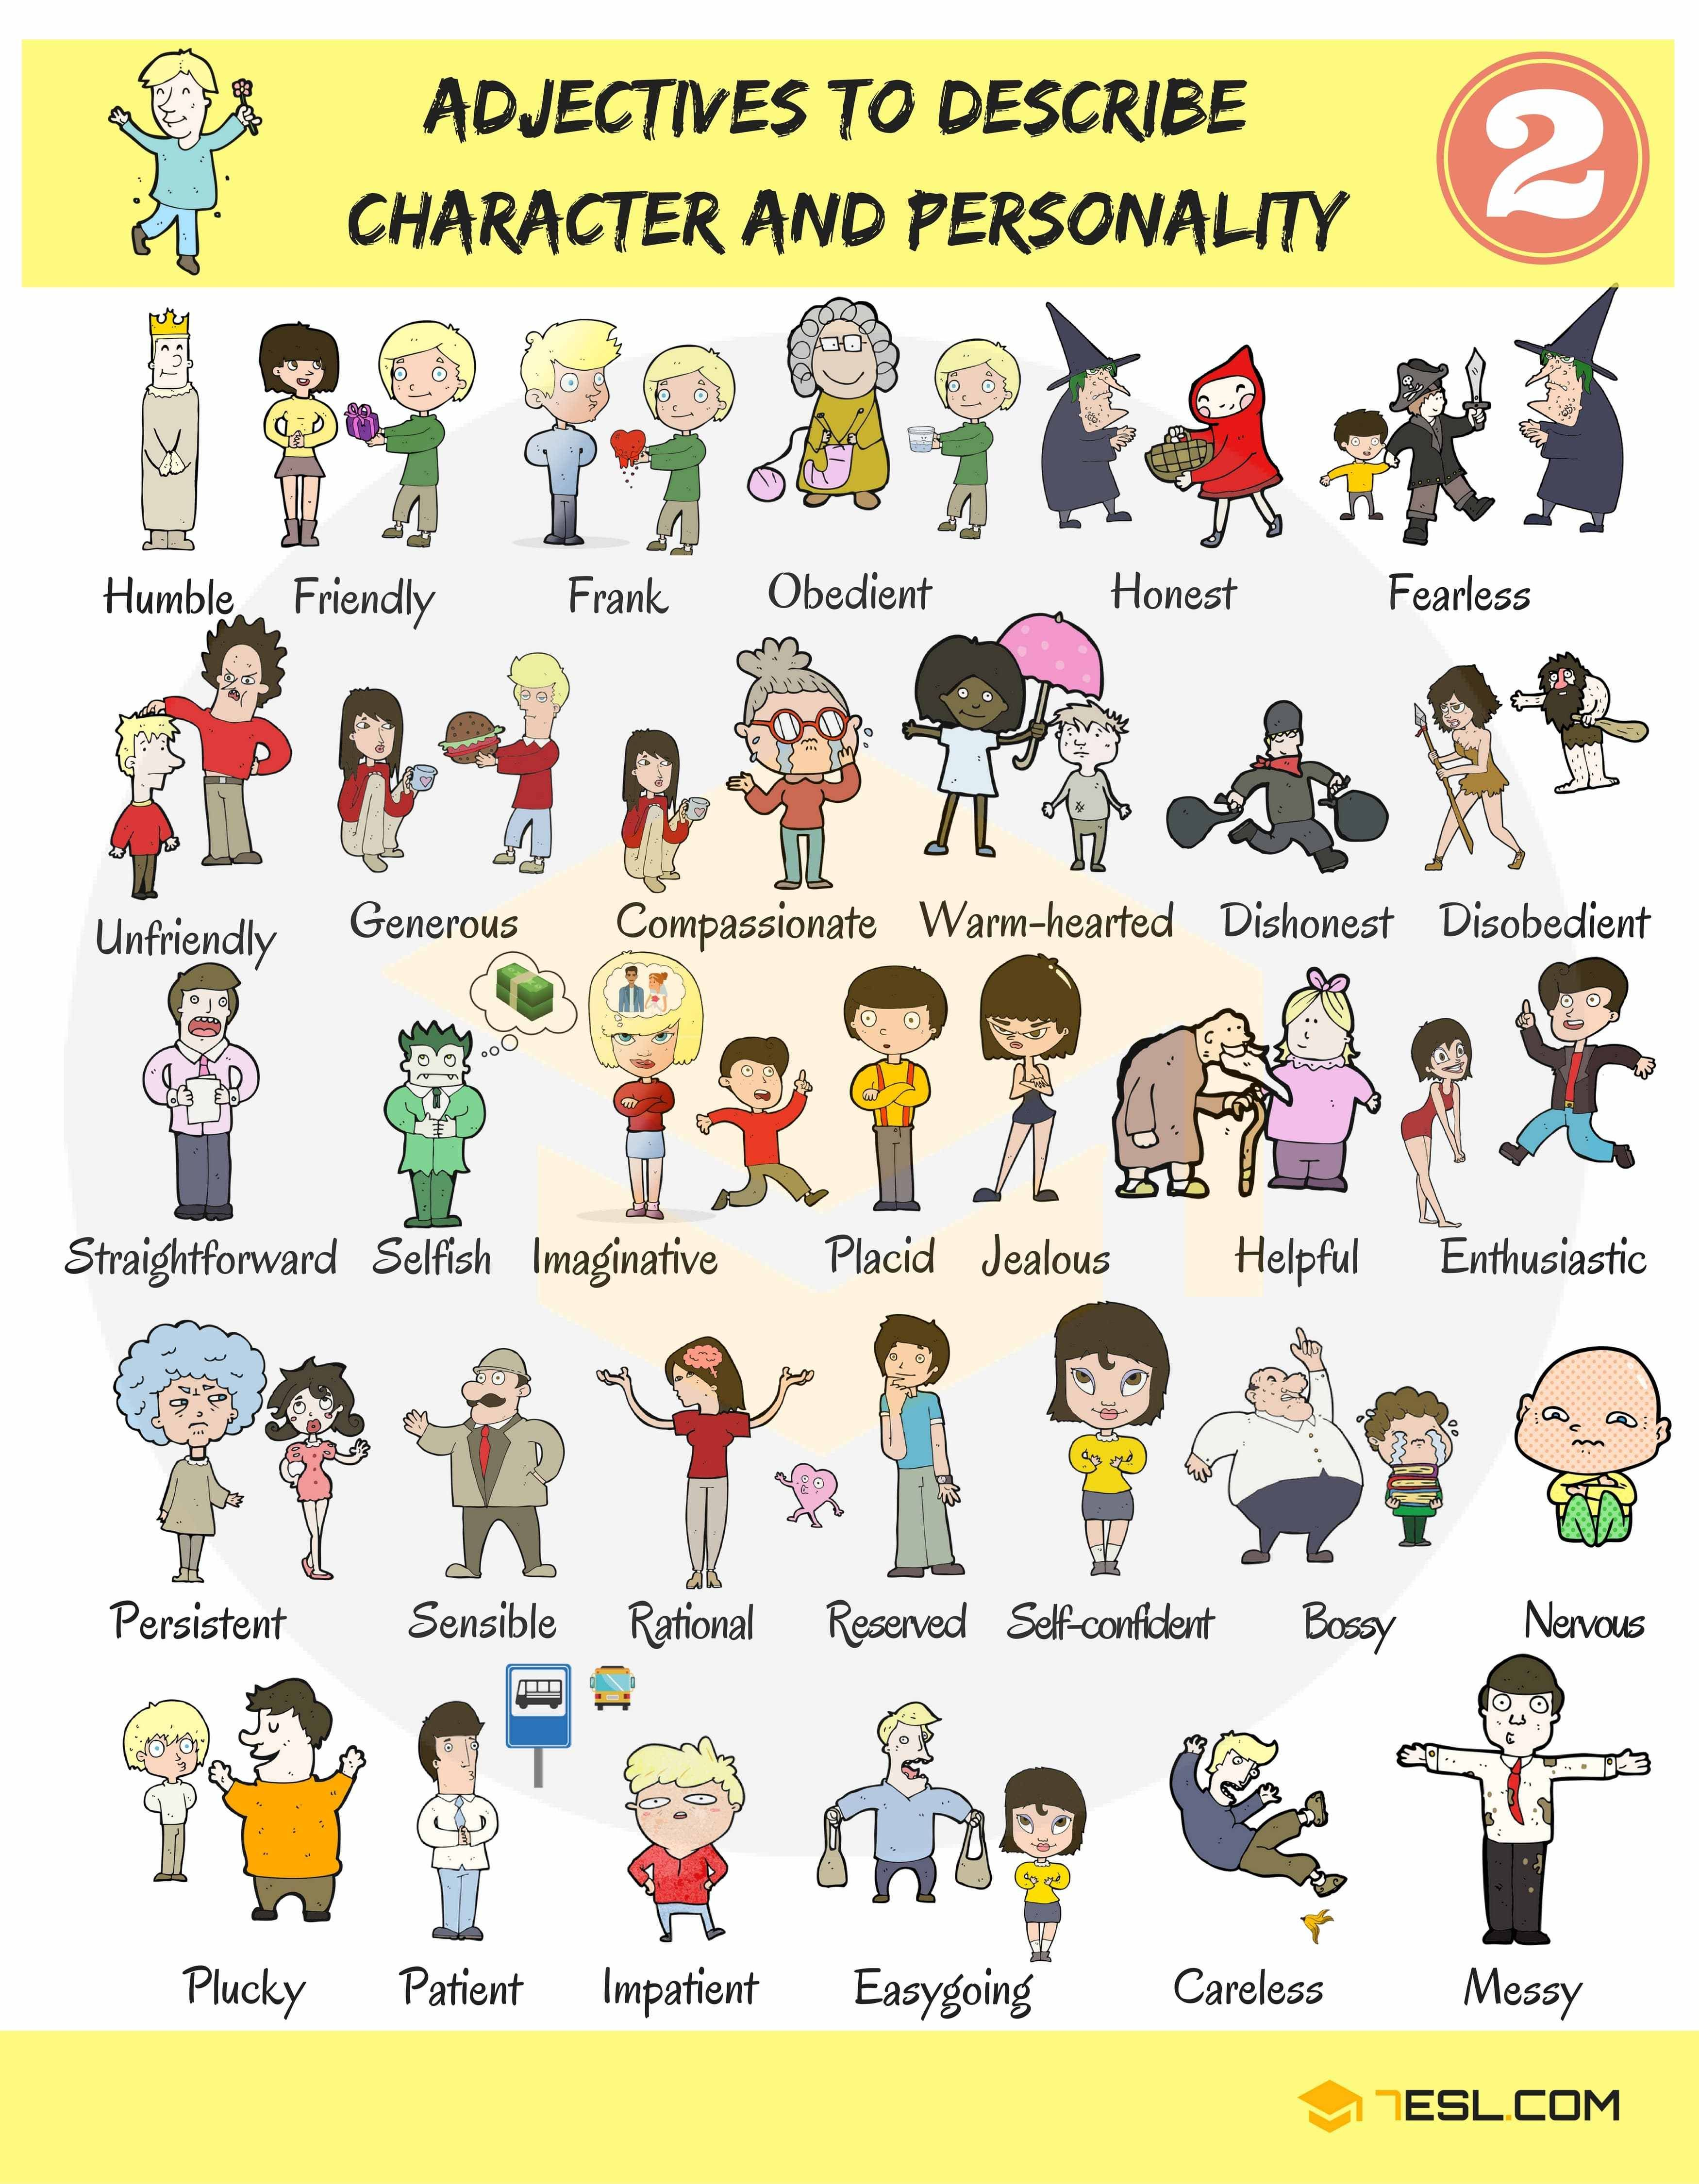 English Adjectives For Describing Character And Personality